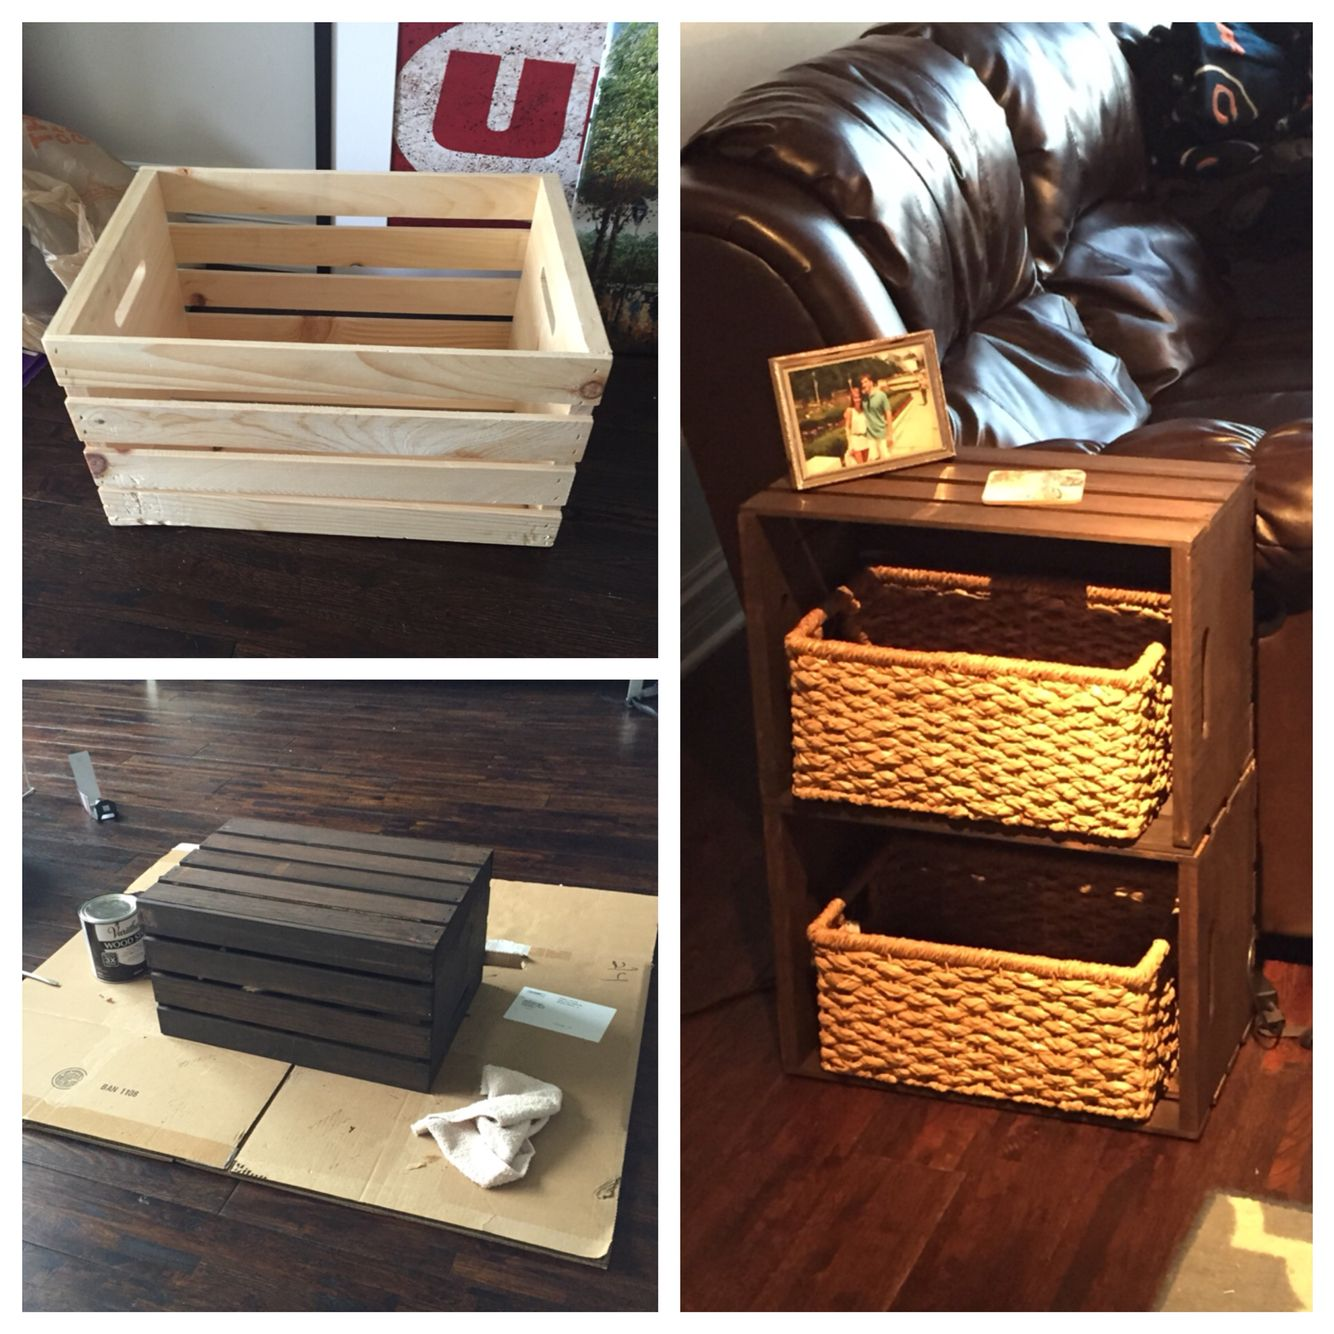 End table made from home depot wine crates my pinterest for Coffee table made out of wooden crates